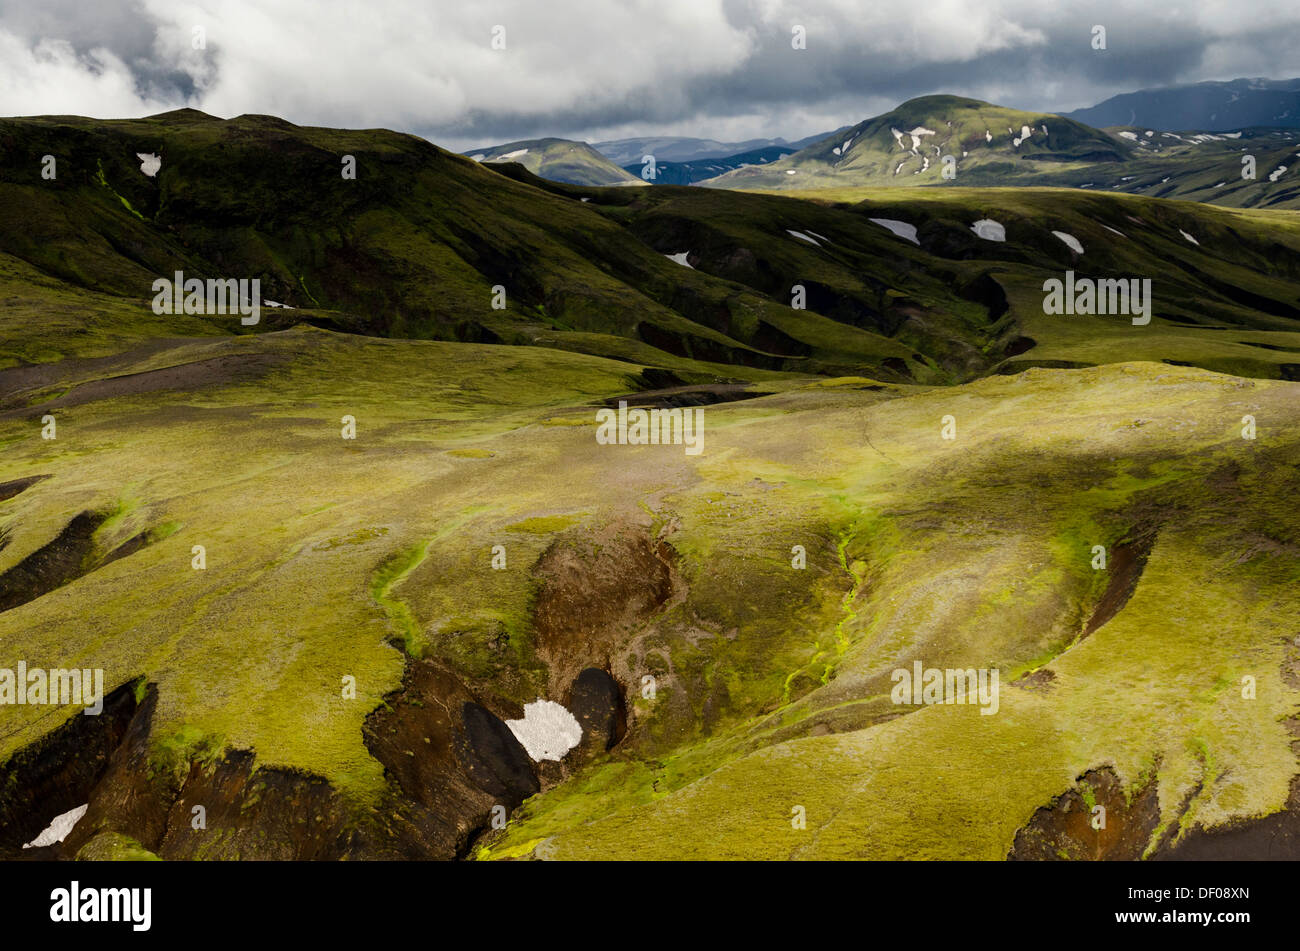 Aerial view, moss-covered landscape, Icelandic Highlands, Iceland, Europe Stock Photo